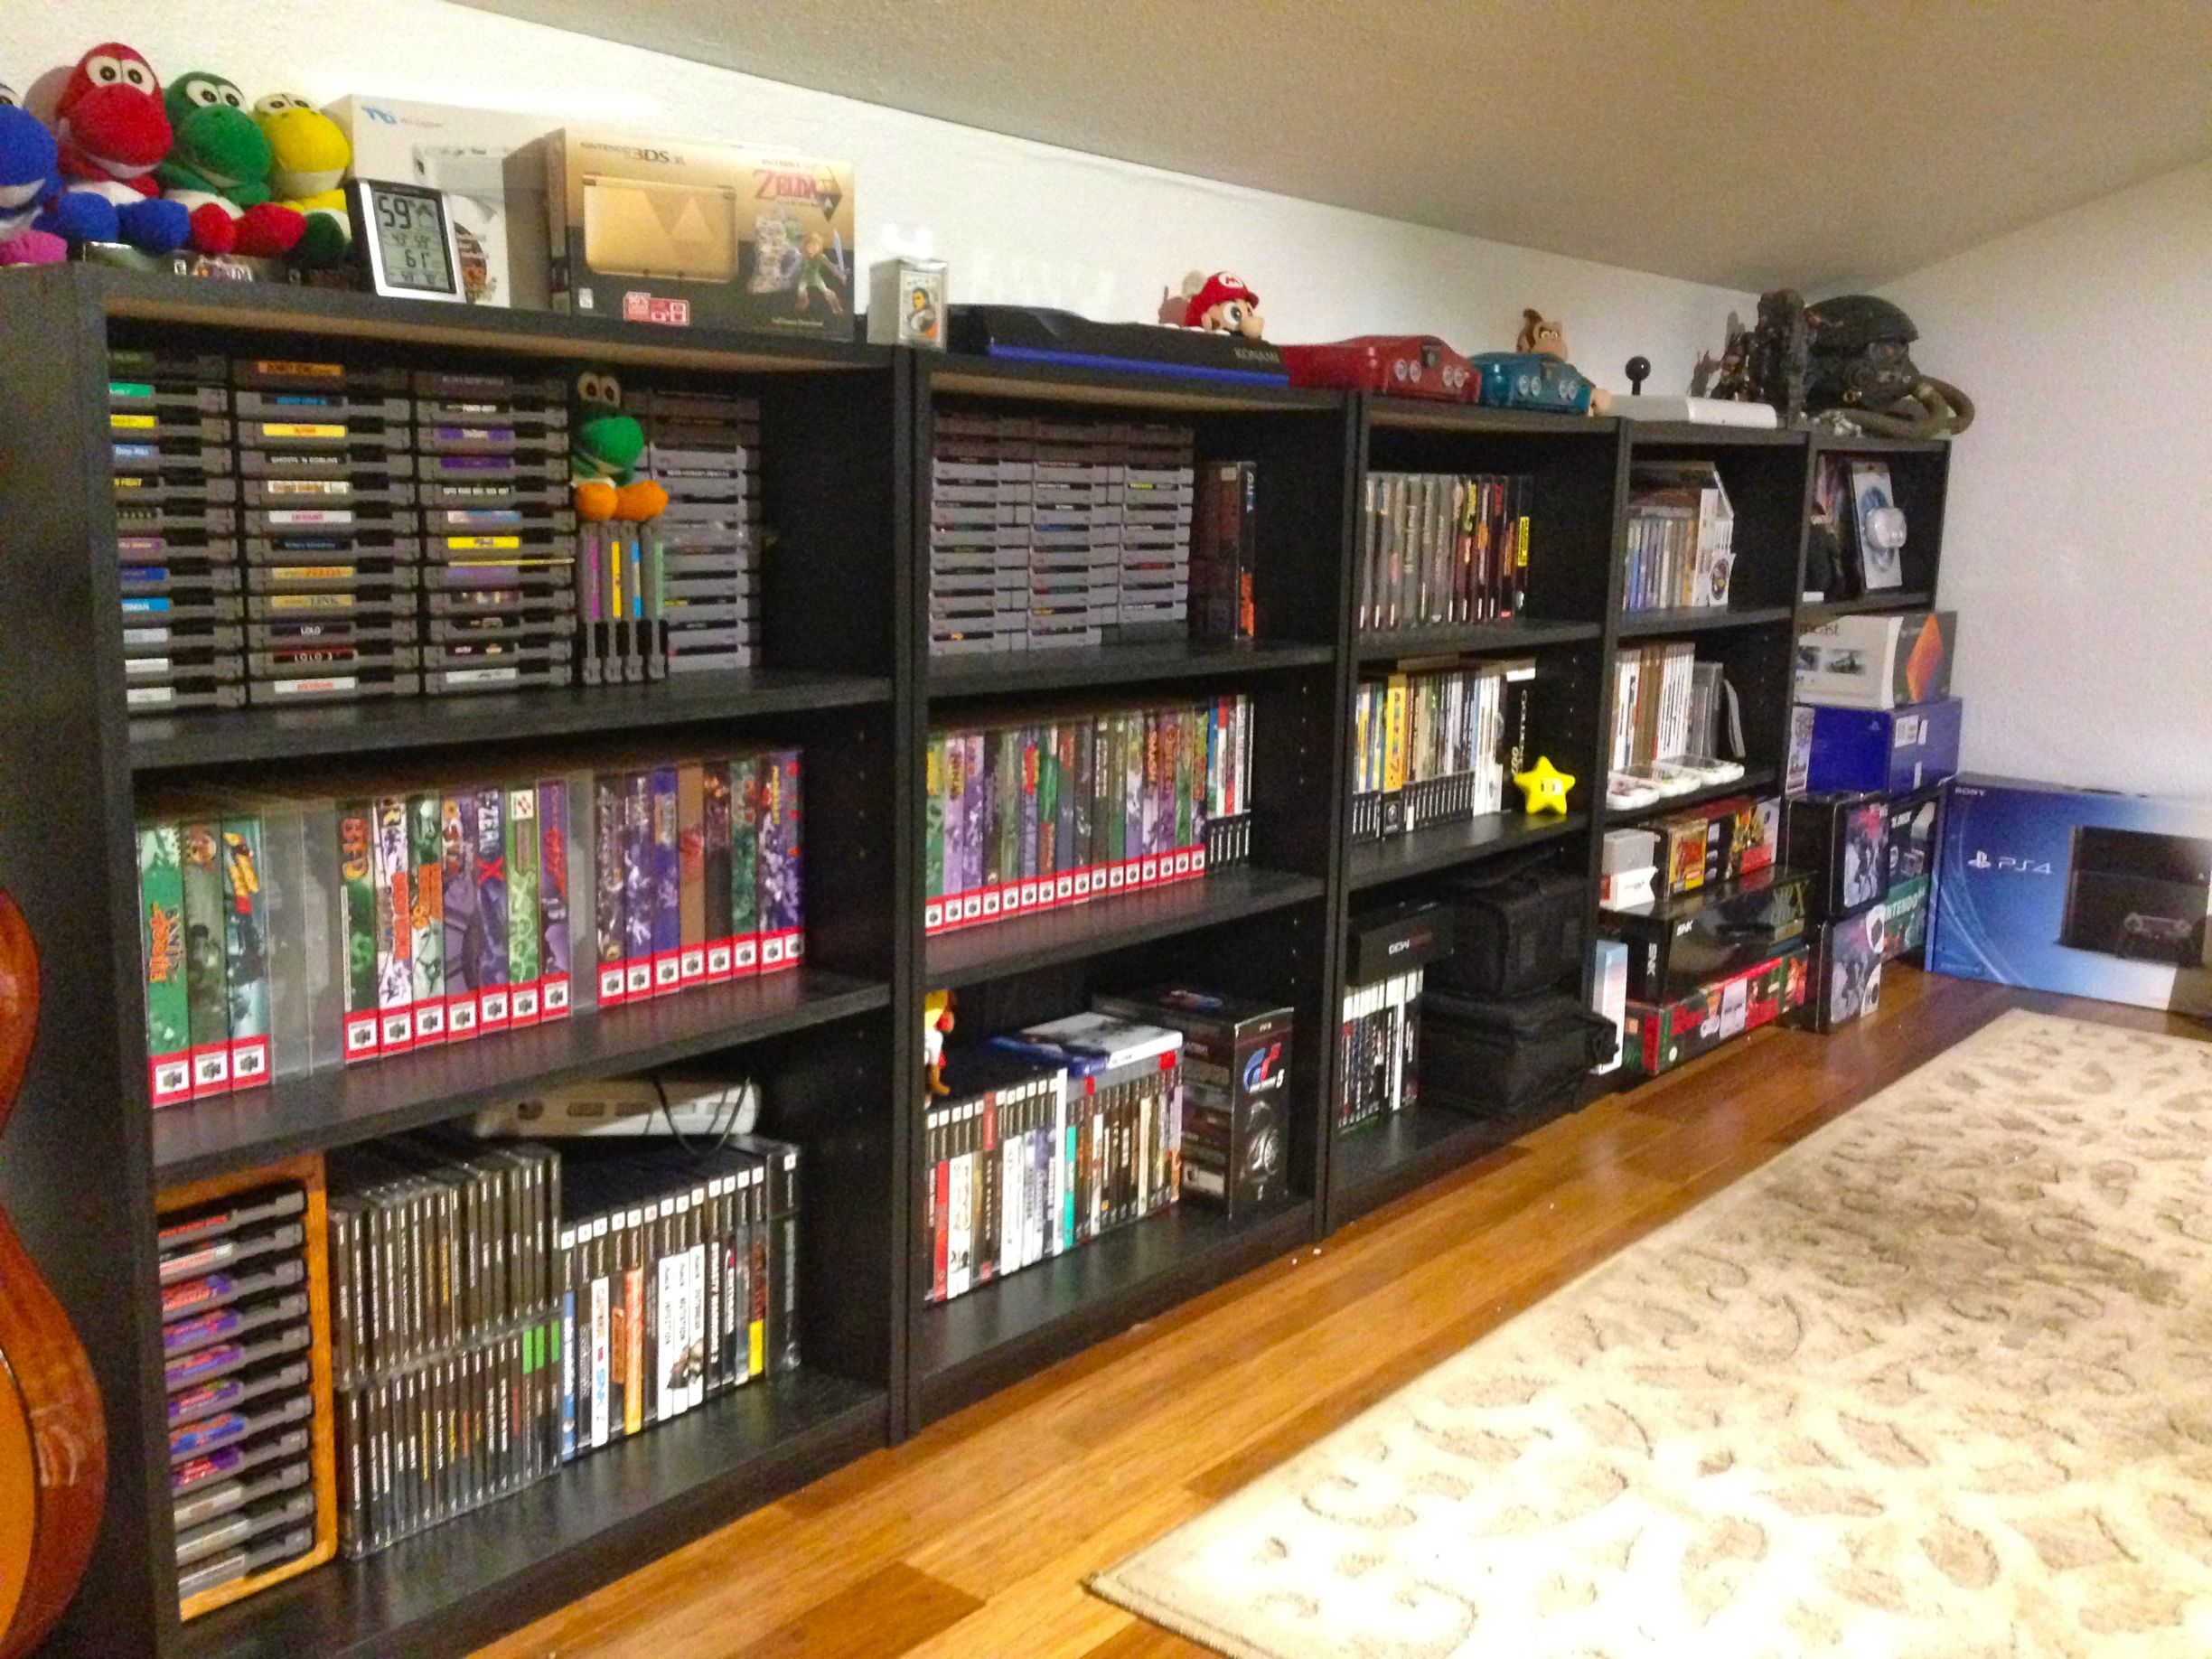 Game for colors - Clean Video Game Shelves Via Reddit User Truond